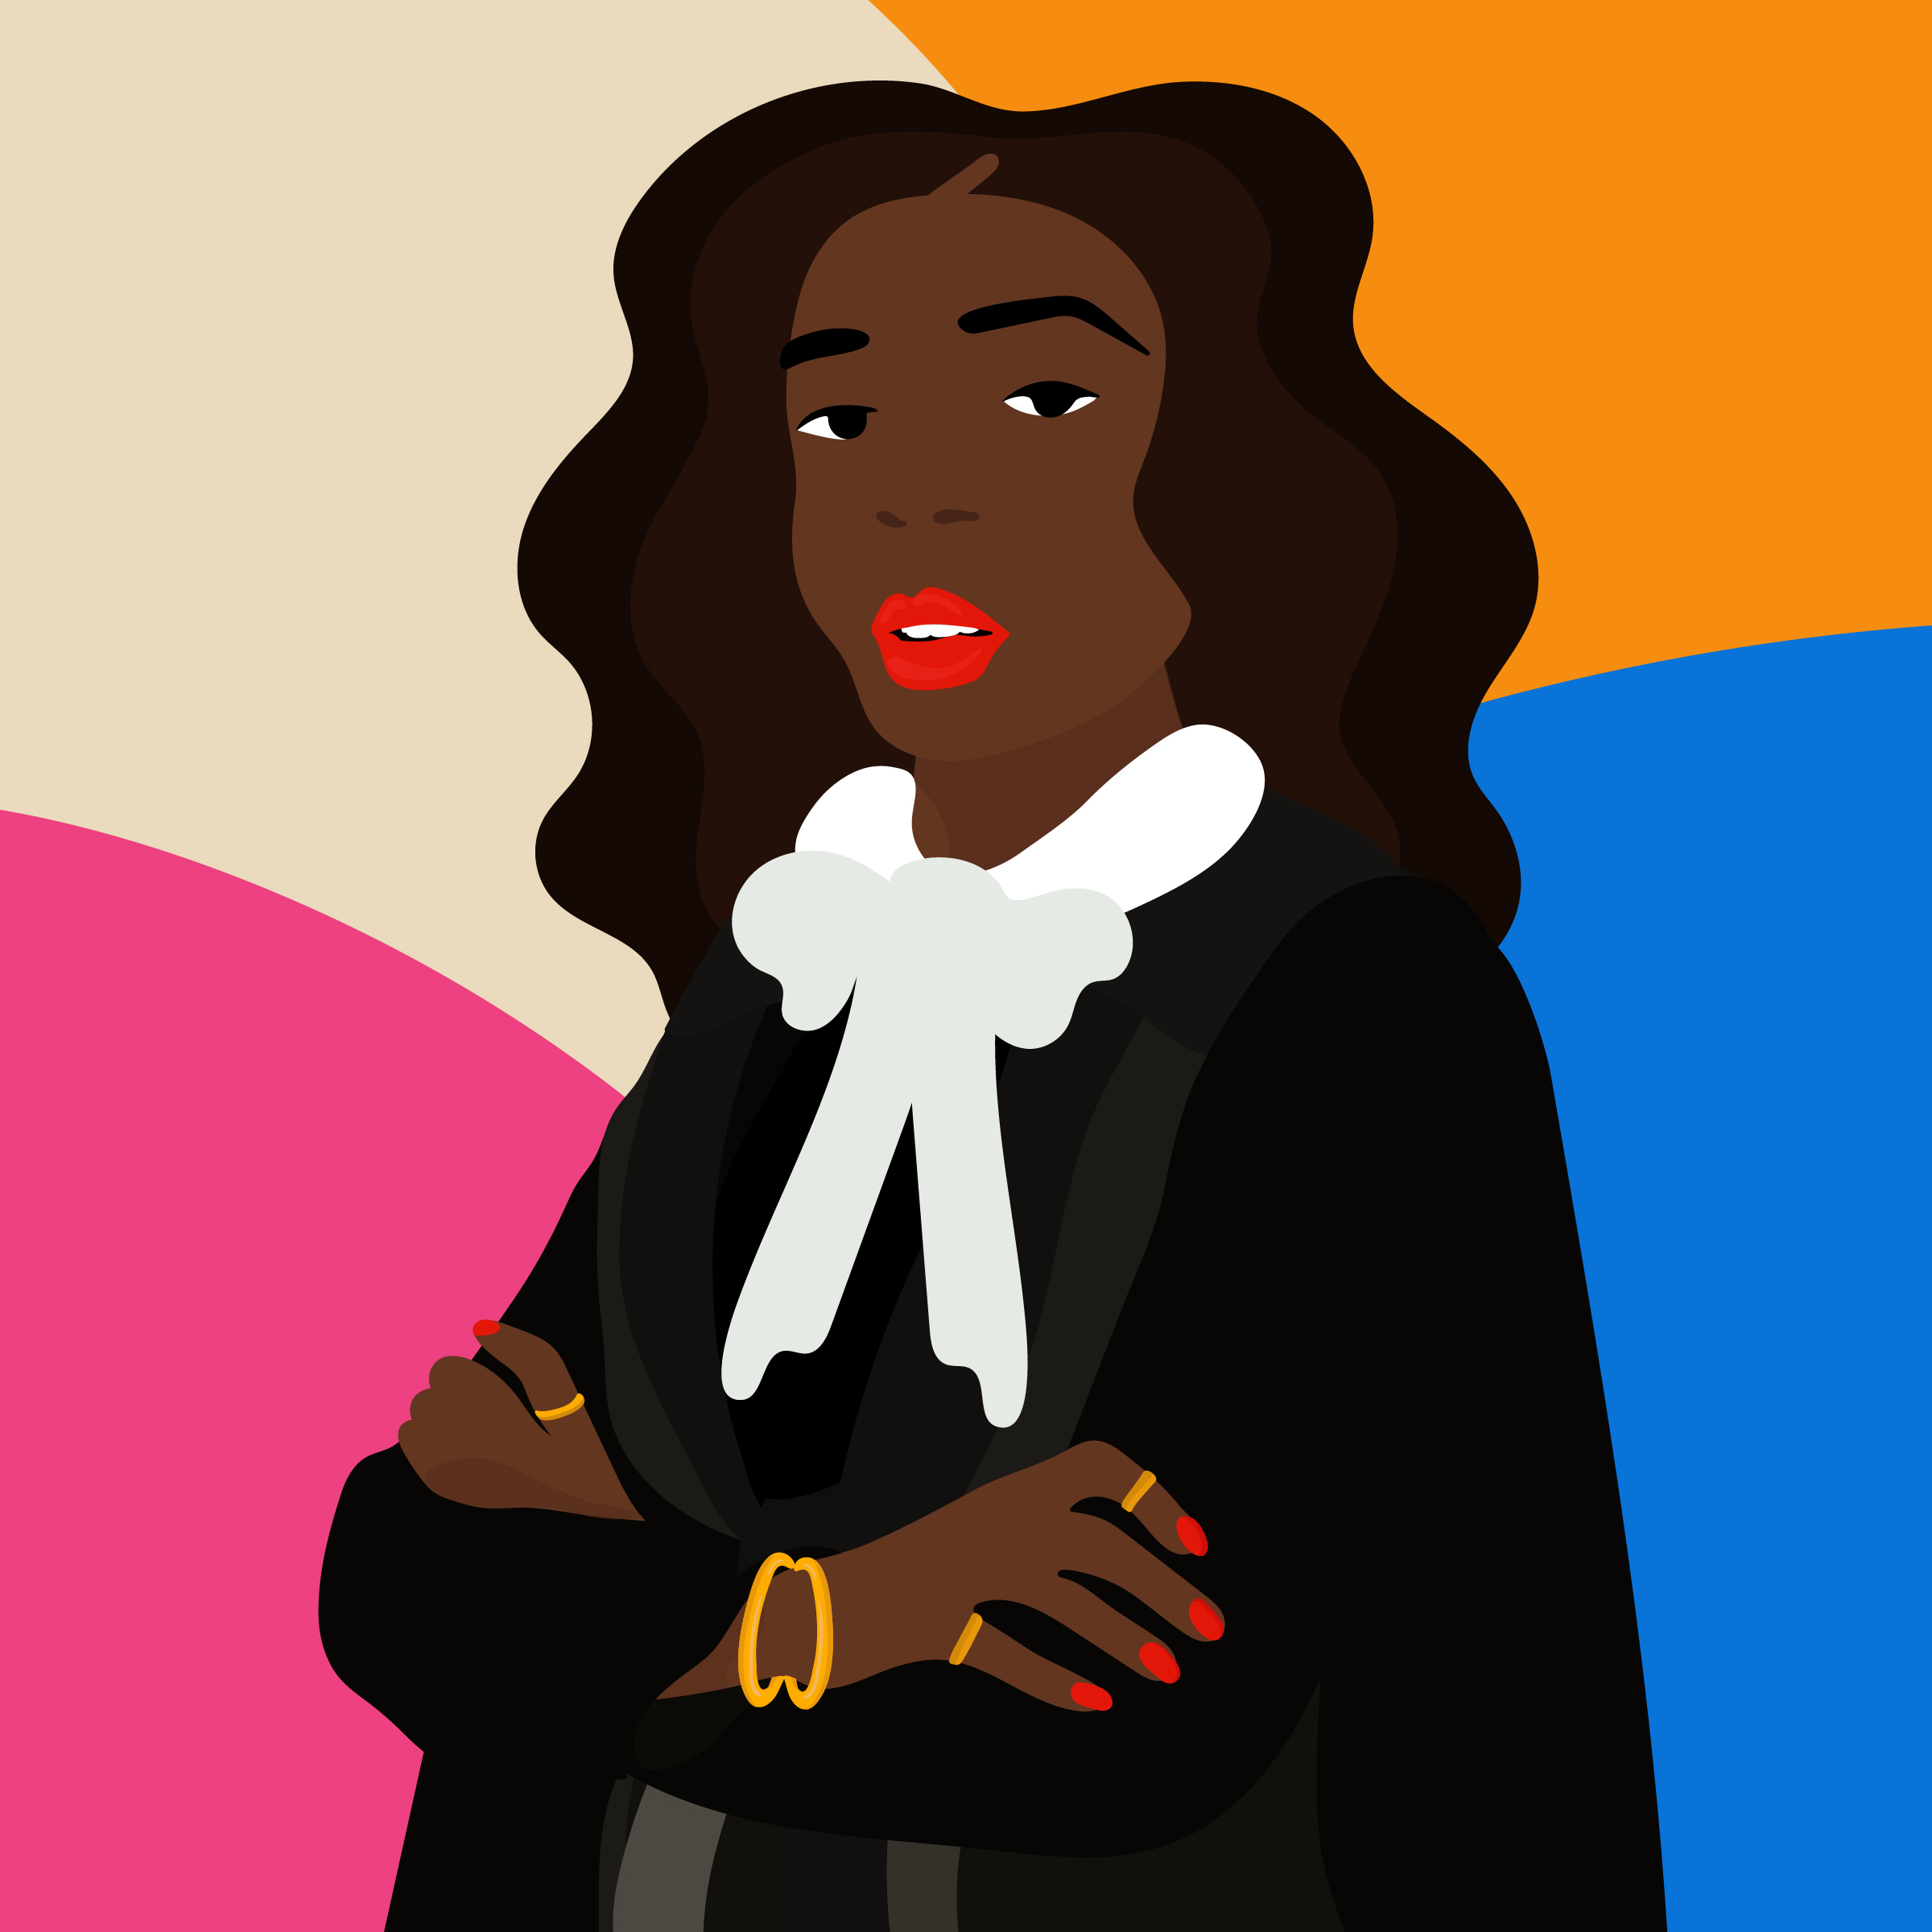 An Illustration of a black woman in a judge's robe on a colorful background.